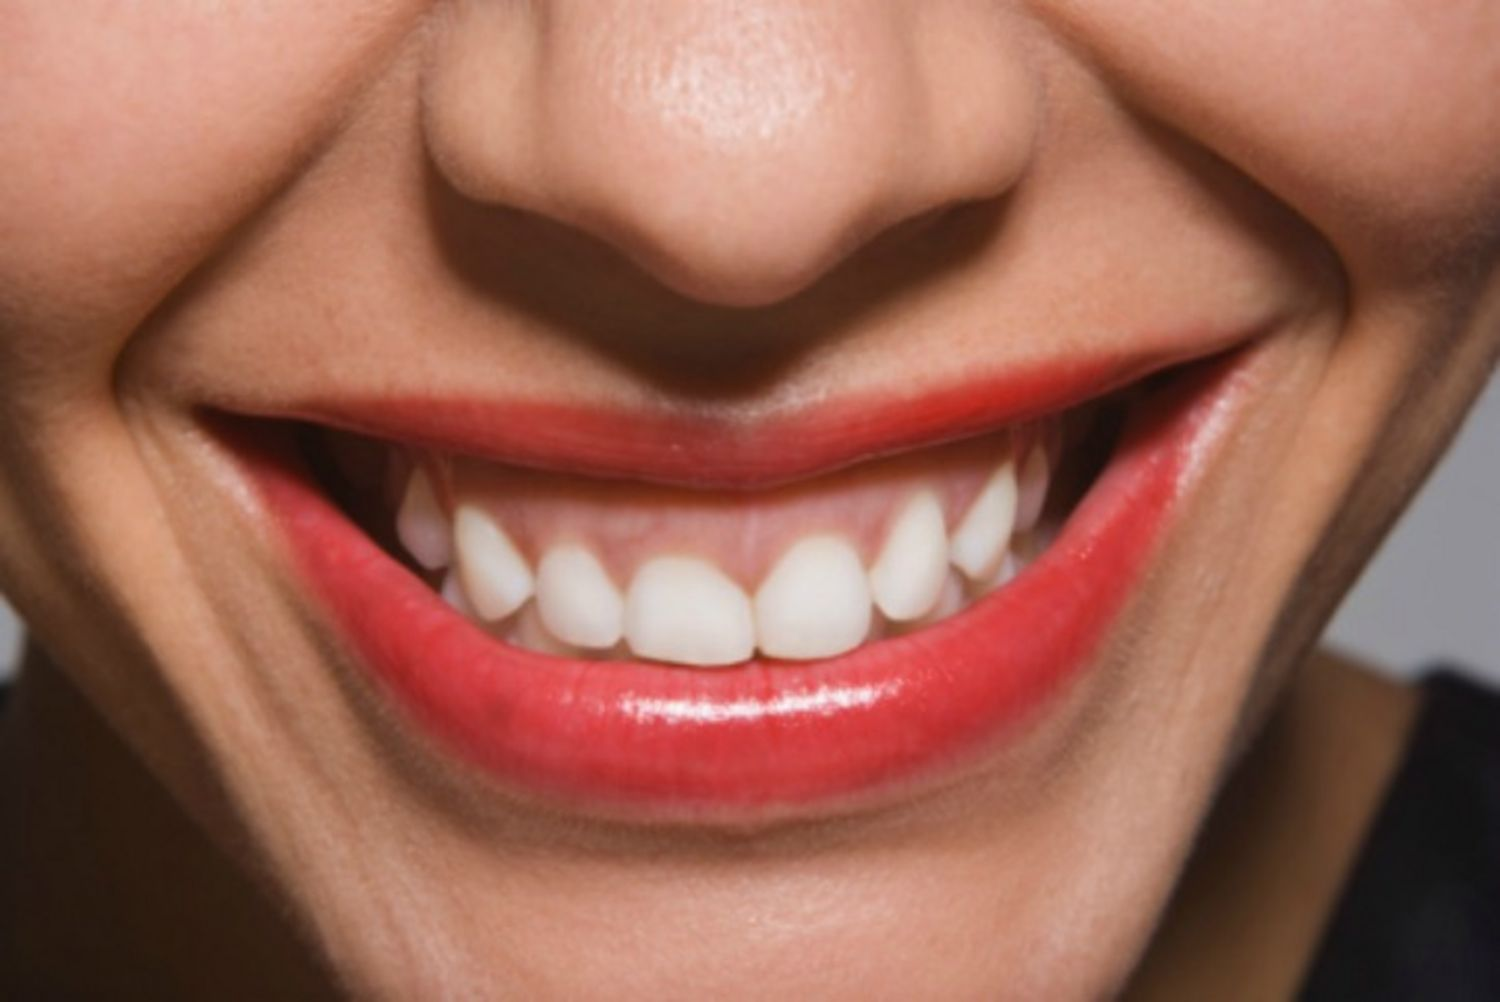 Extra Incentive to Brush: A Pretty Smile Also Benefits Your Health! From GLAMOUR magazine, courtesy O'fallon MO dentist, monticellodental.com